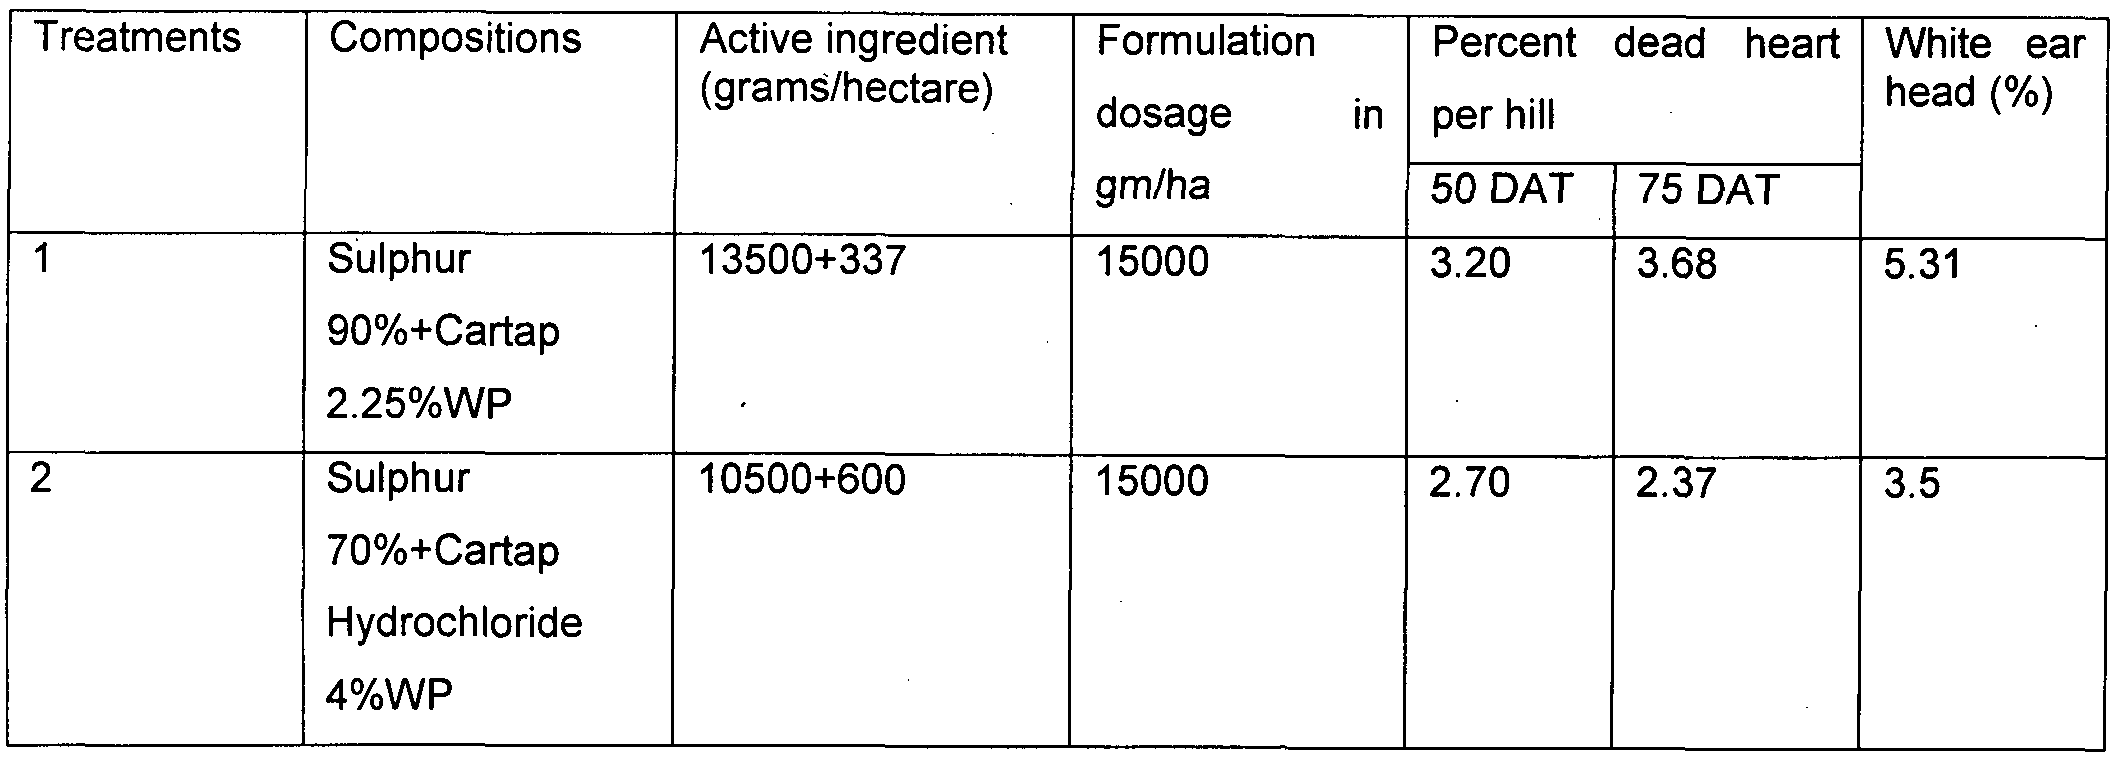 imgf000013_0001 patent wo2012101659a1 pesticide composition comprising sulphur rsx fog light wiring diagram at panicattacktreatment.co